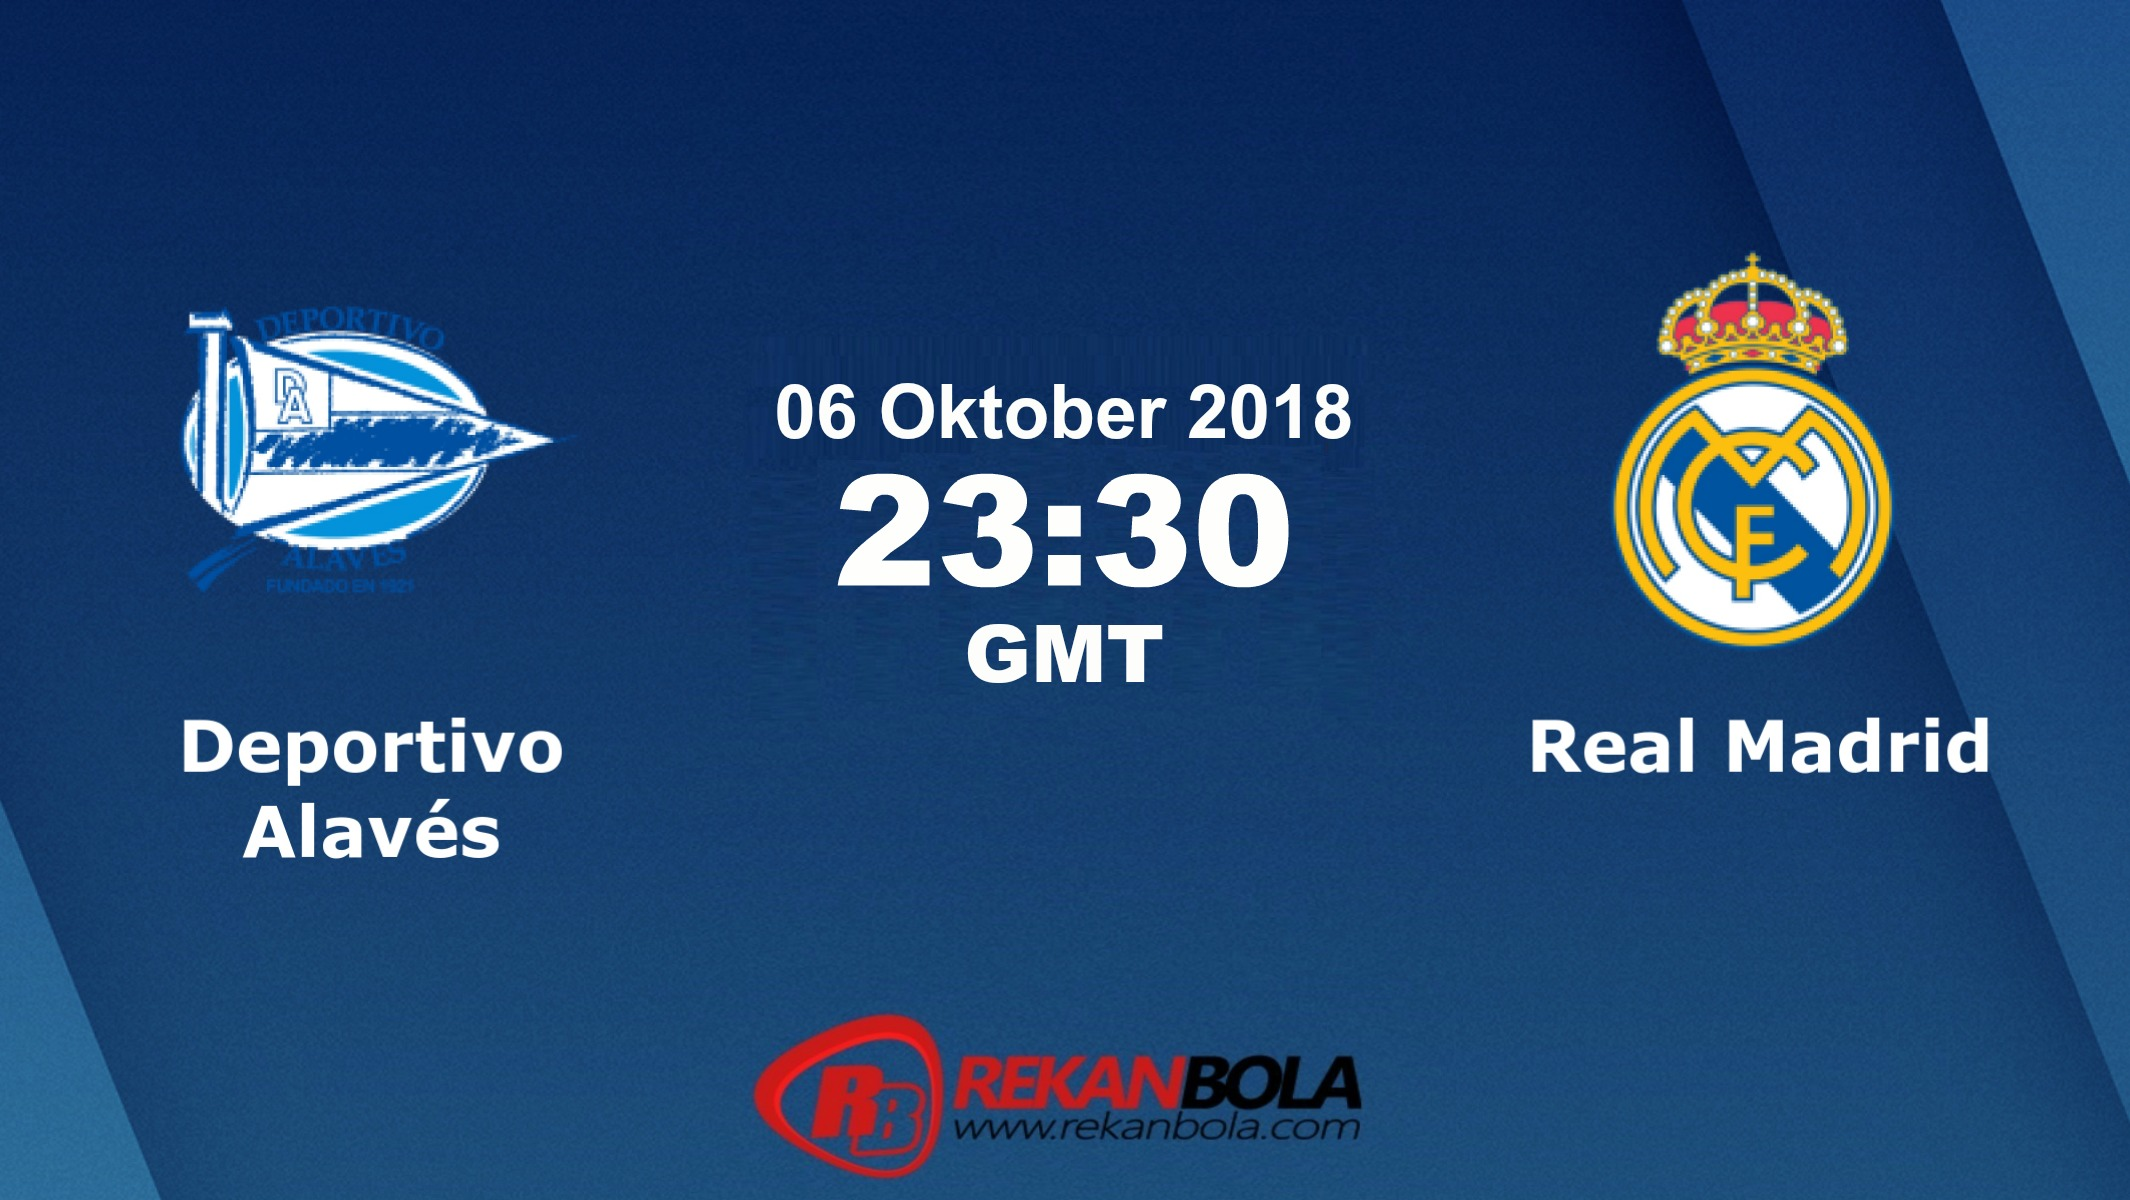 Nonton Siaran Live Streaming Alavés Vs Madrid 06 Oktober 2018